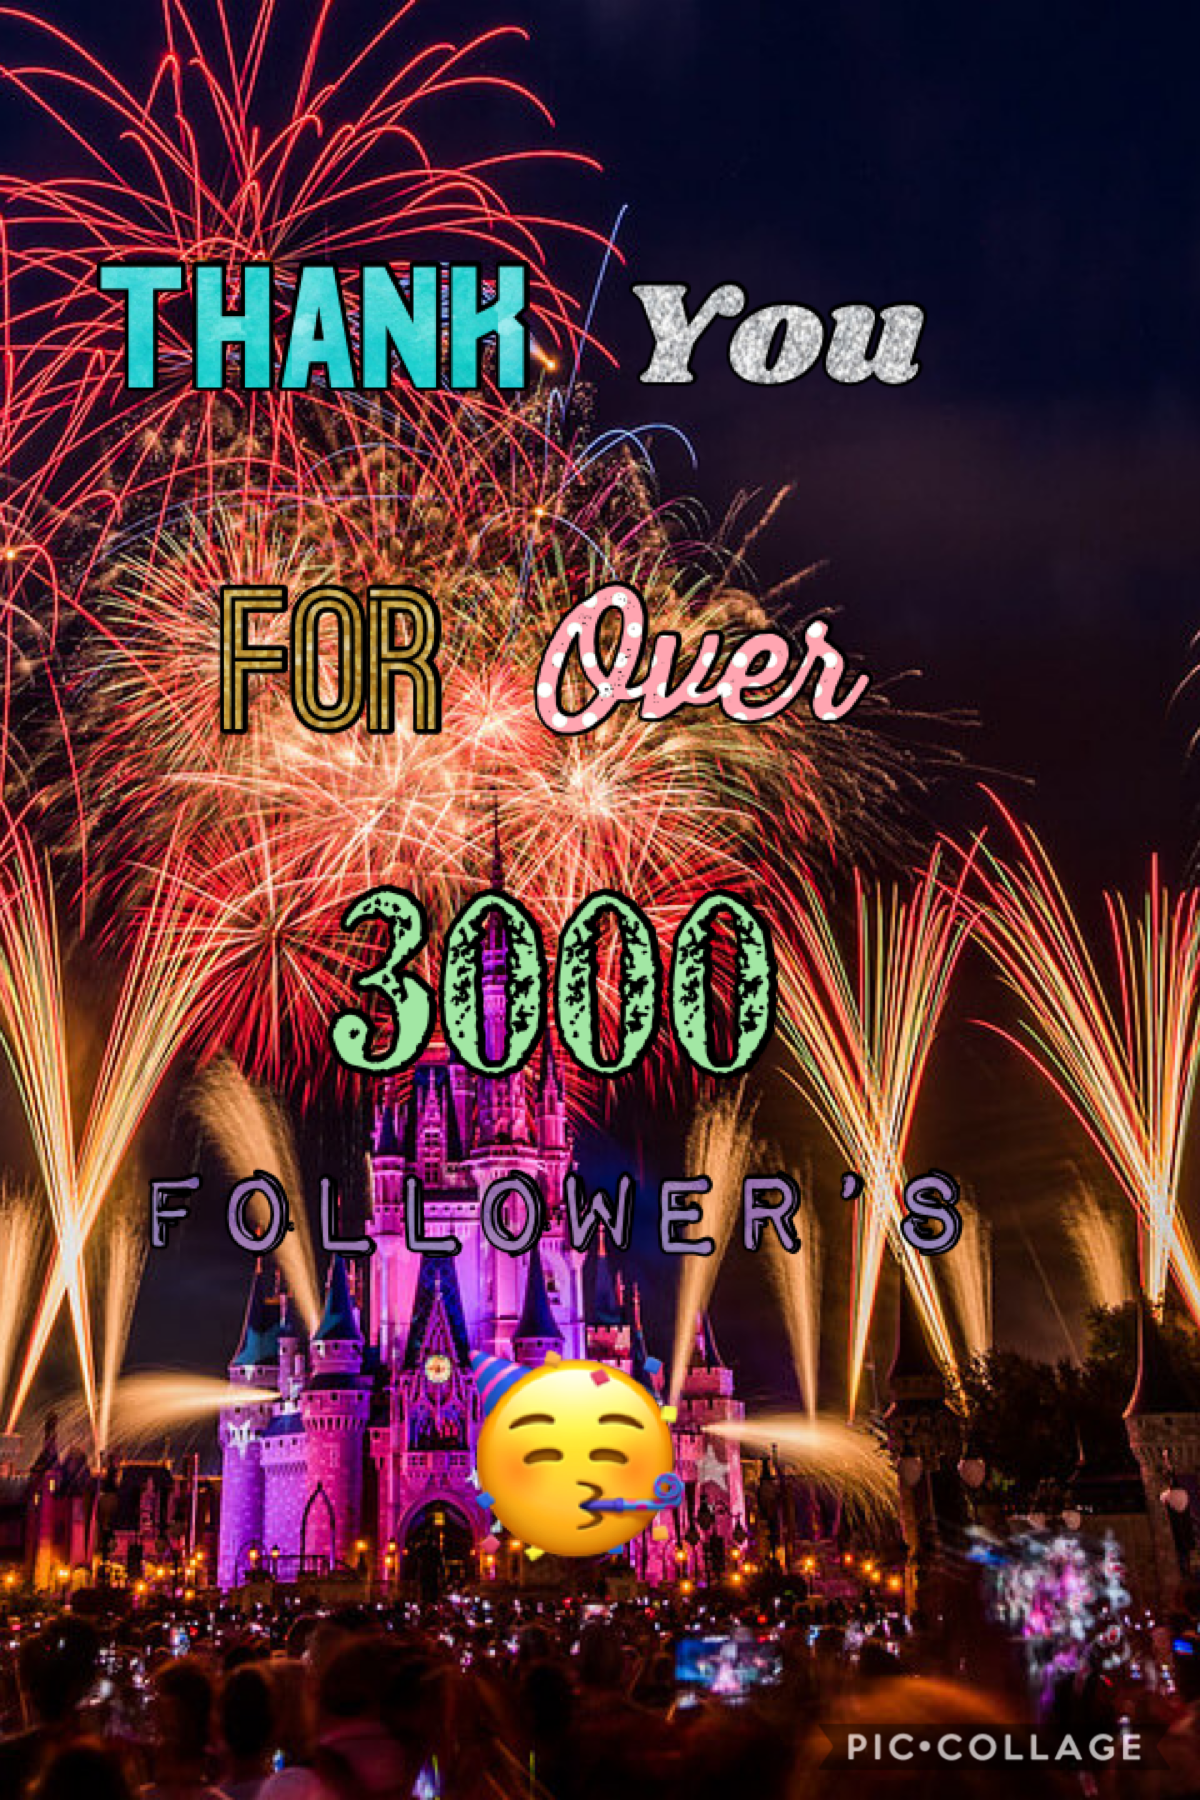 Thank you for over 3000 followers